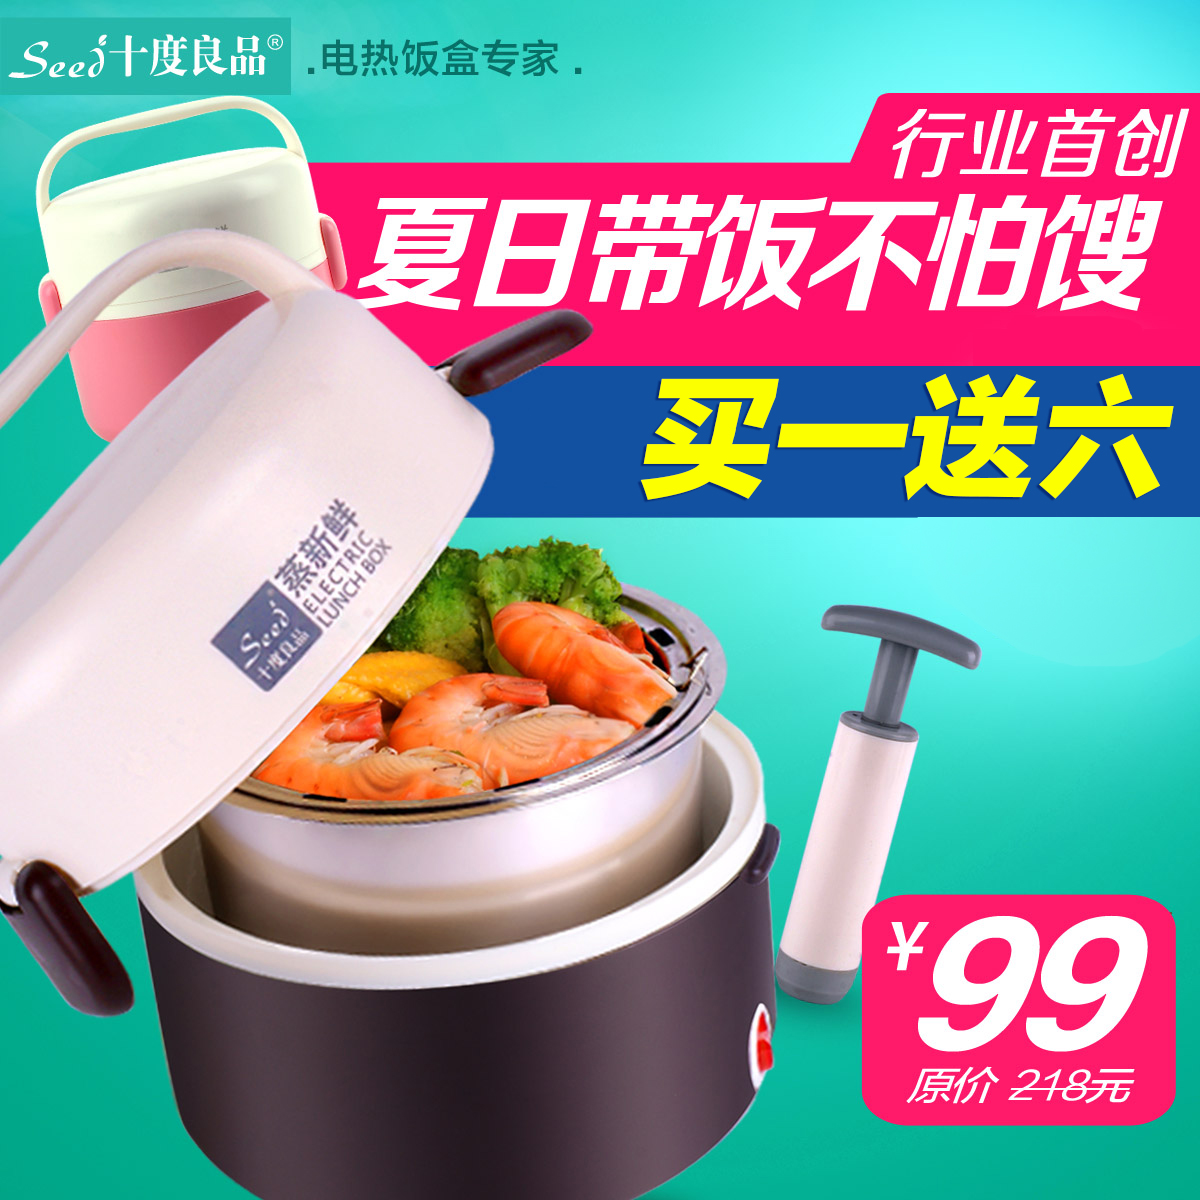 Sd-921 stainless steel liner electric heating lunch box vacuum preservation heated lunch box insulation(China (Mainland))